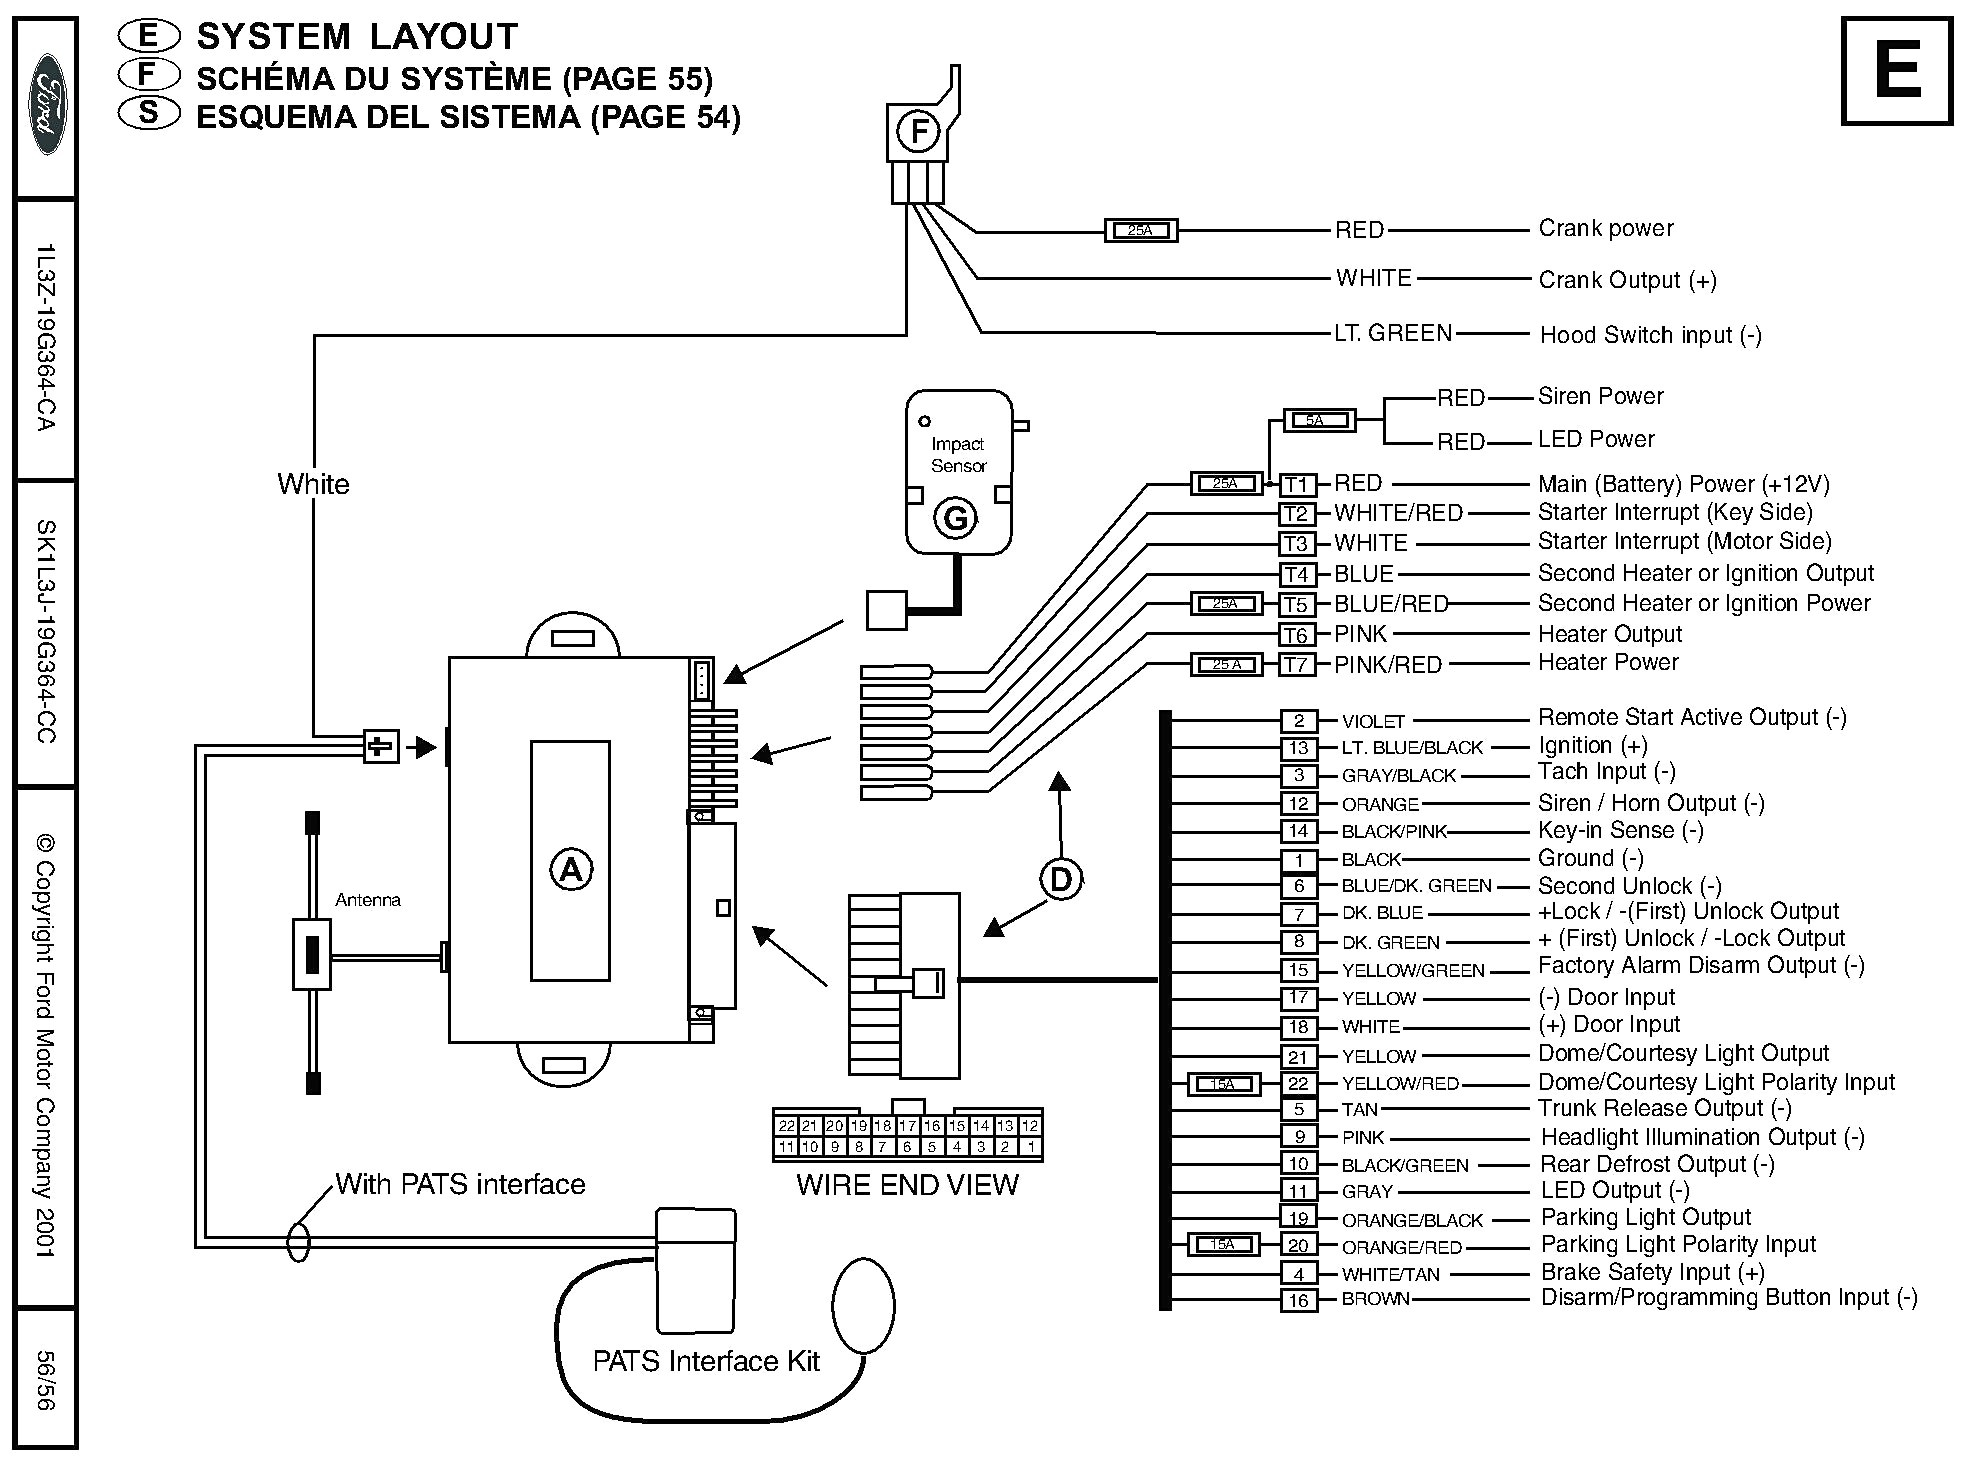 Og Camera Wiring Diagram | Online Wiring Diagram on security camera plug, security camera installation, security system wiring diagrams, security camera adjustments, security camera schematic diagram, security camera connectors, how a camera works diagram, security camera power, ip camera system diagram, security camera room, security camera blueprints, security camera positioning home diagram, sony backup camera circuit diagram, security cam wiring, camera parts diagram, software security diagram, ip camera installation diagram, security camera footage, surveillance diagram, internet security diagram,